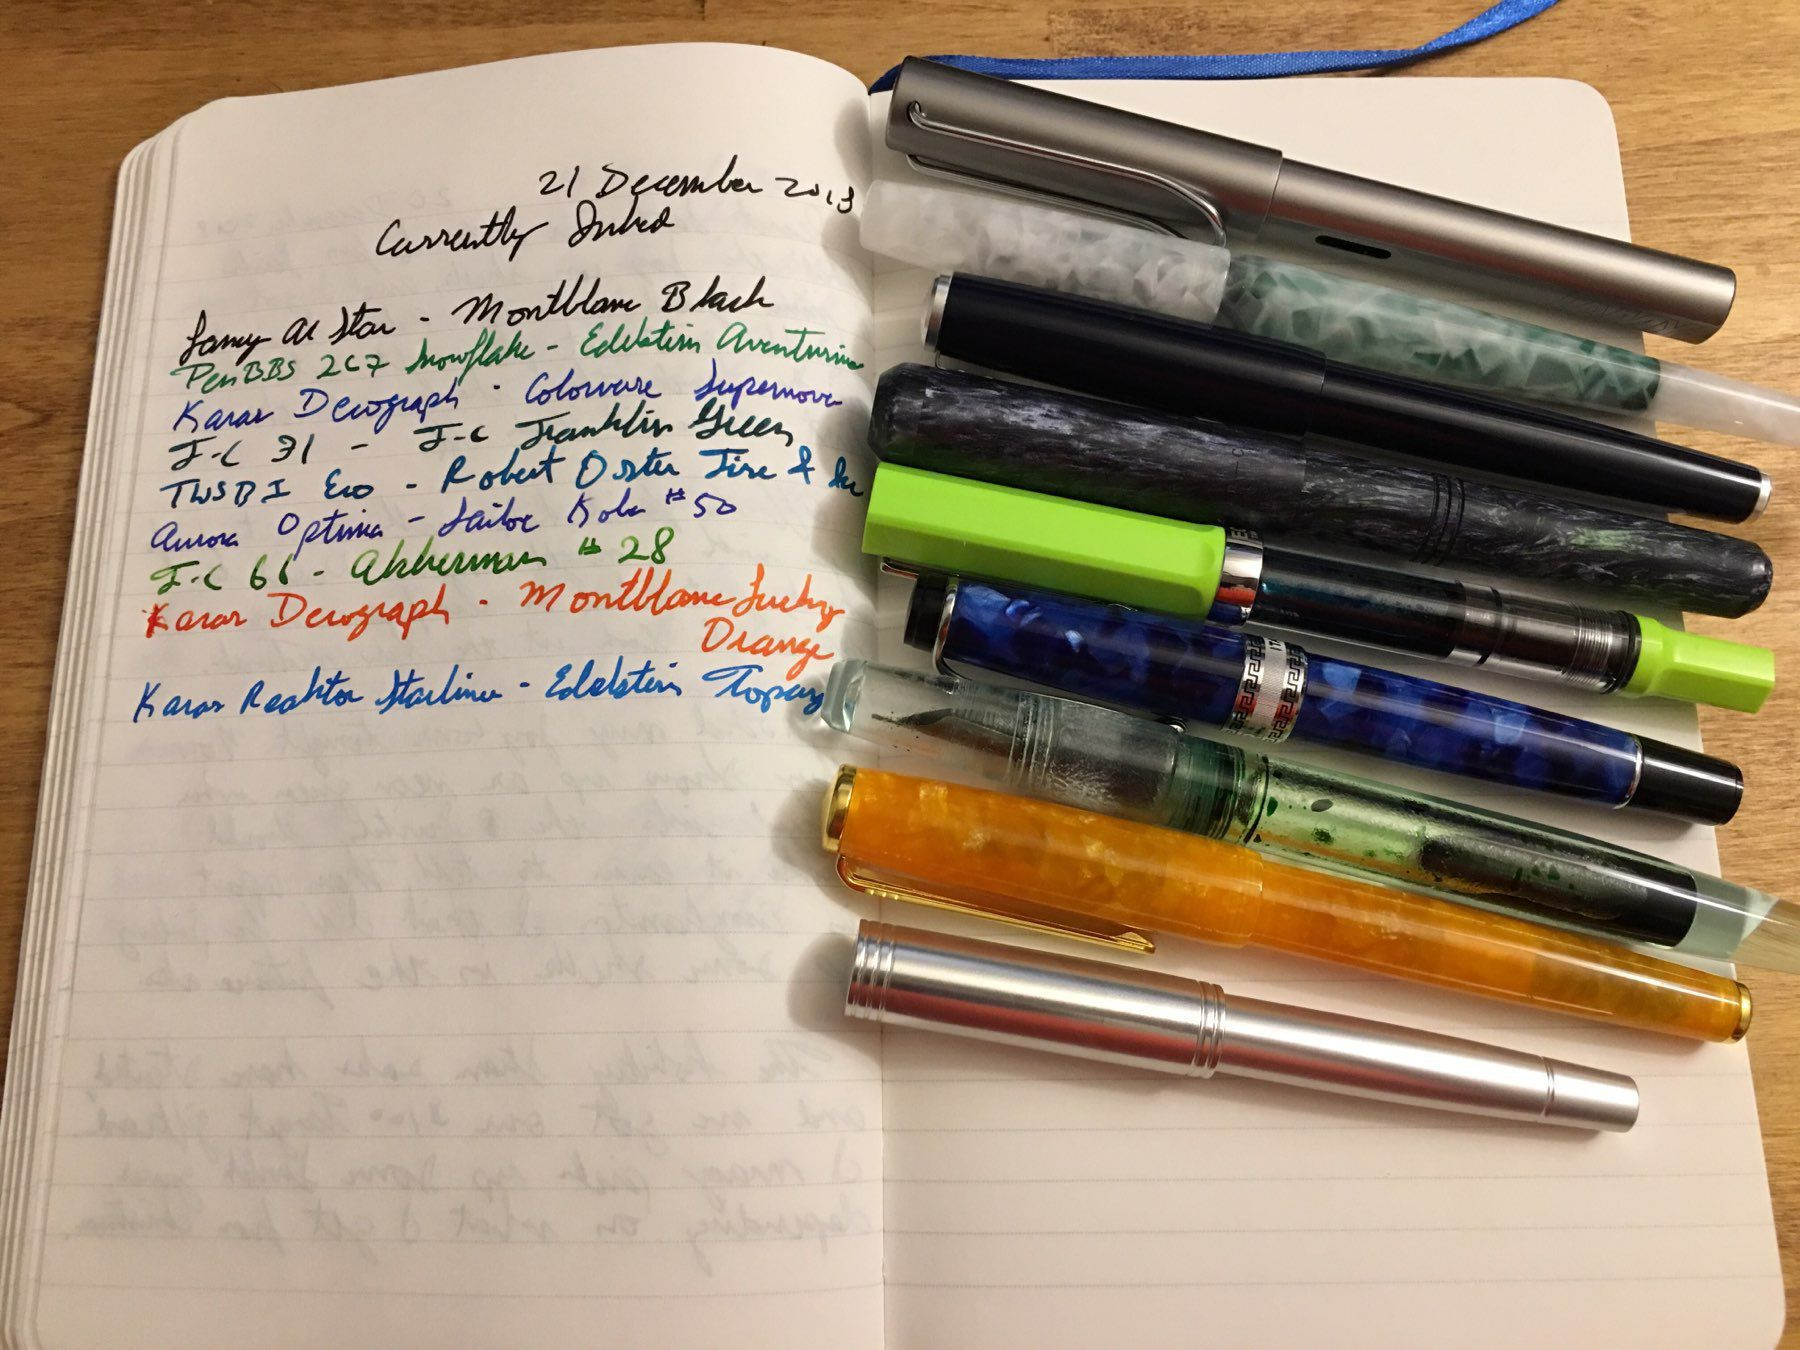 an open notebook with a list of pens and inks on the left side, and the corresponding fountainpen on the right side